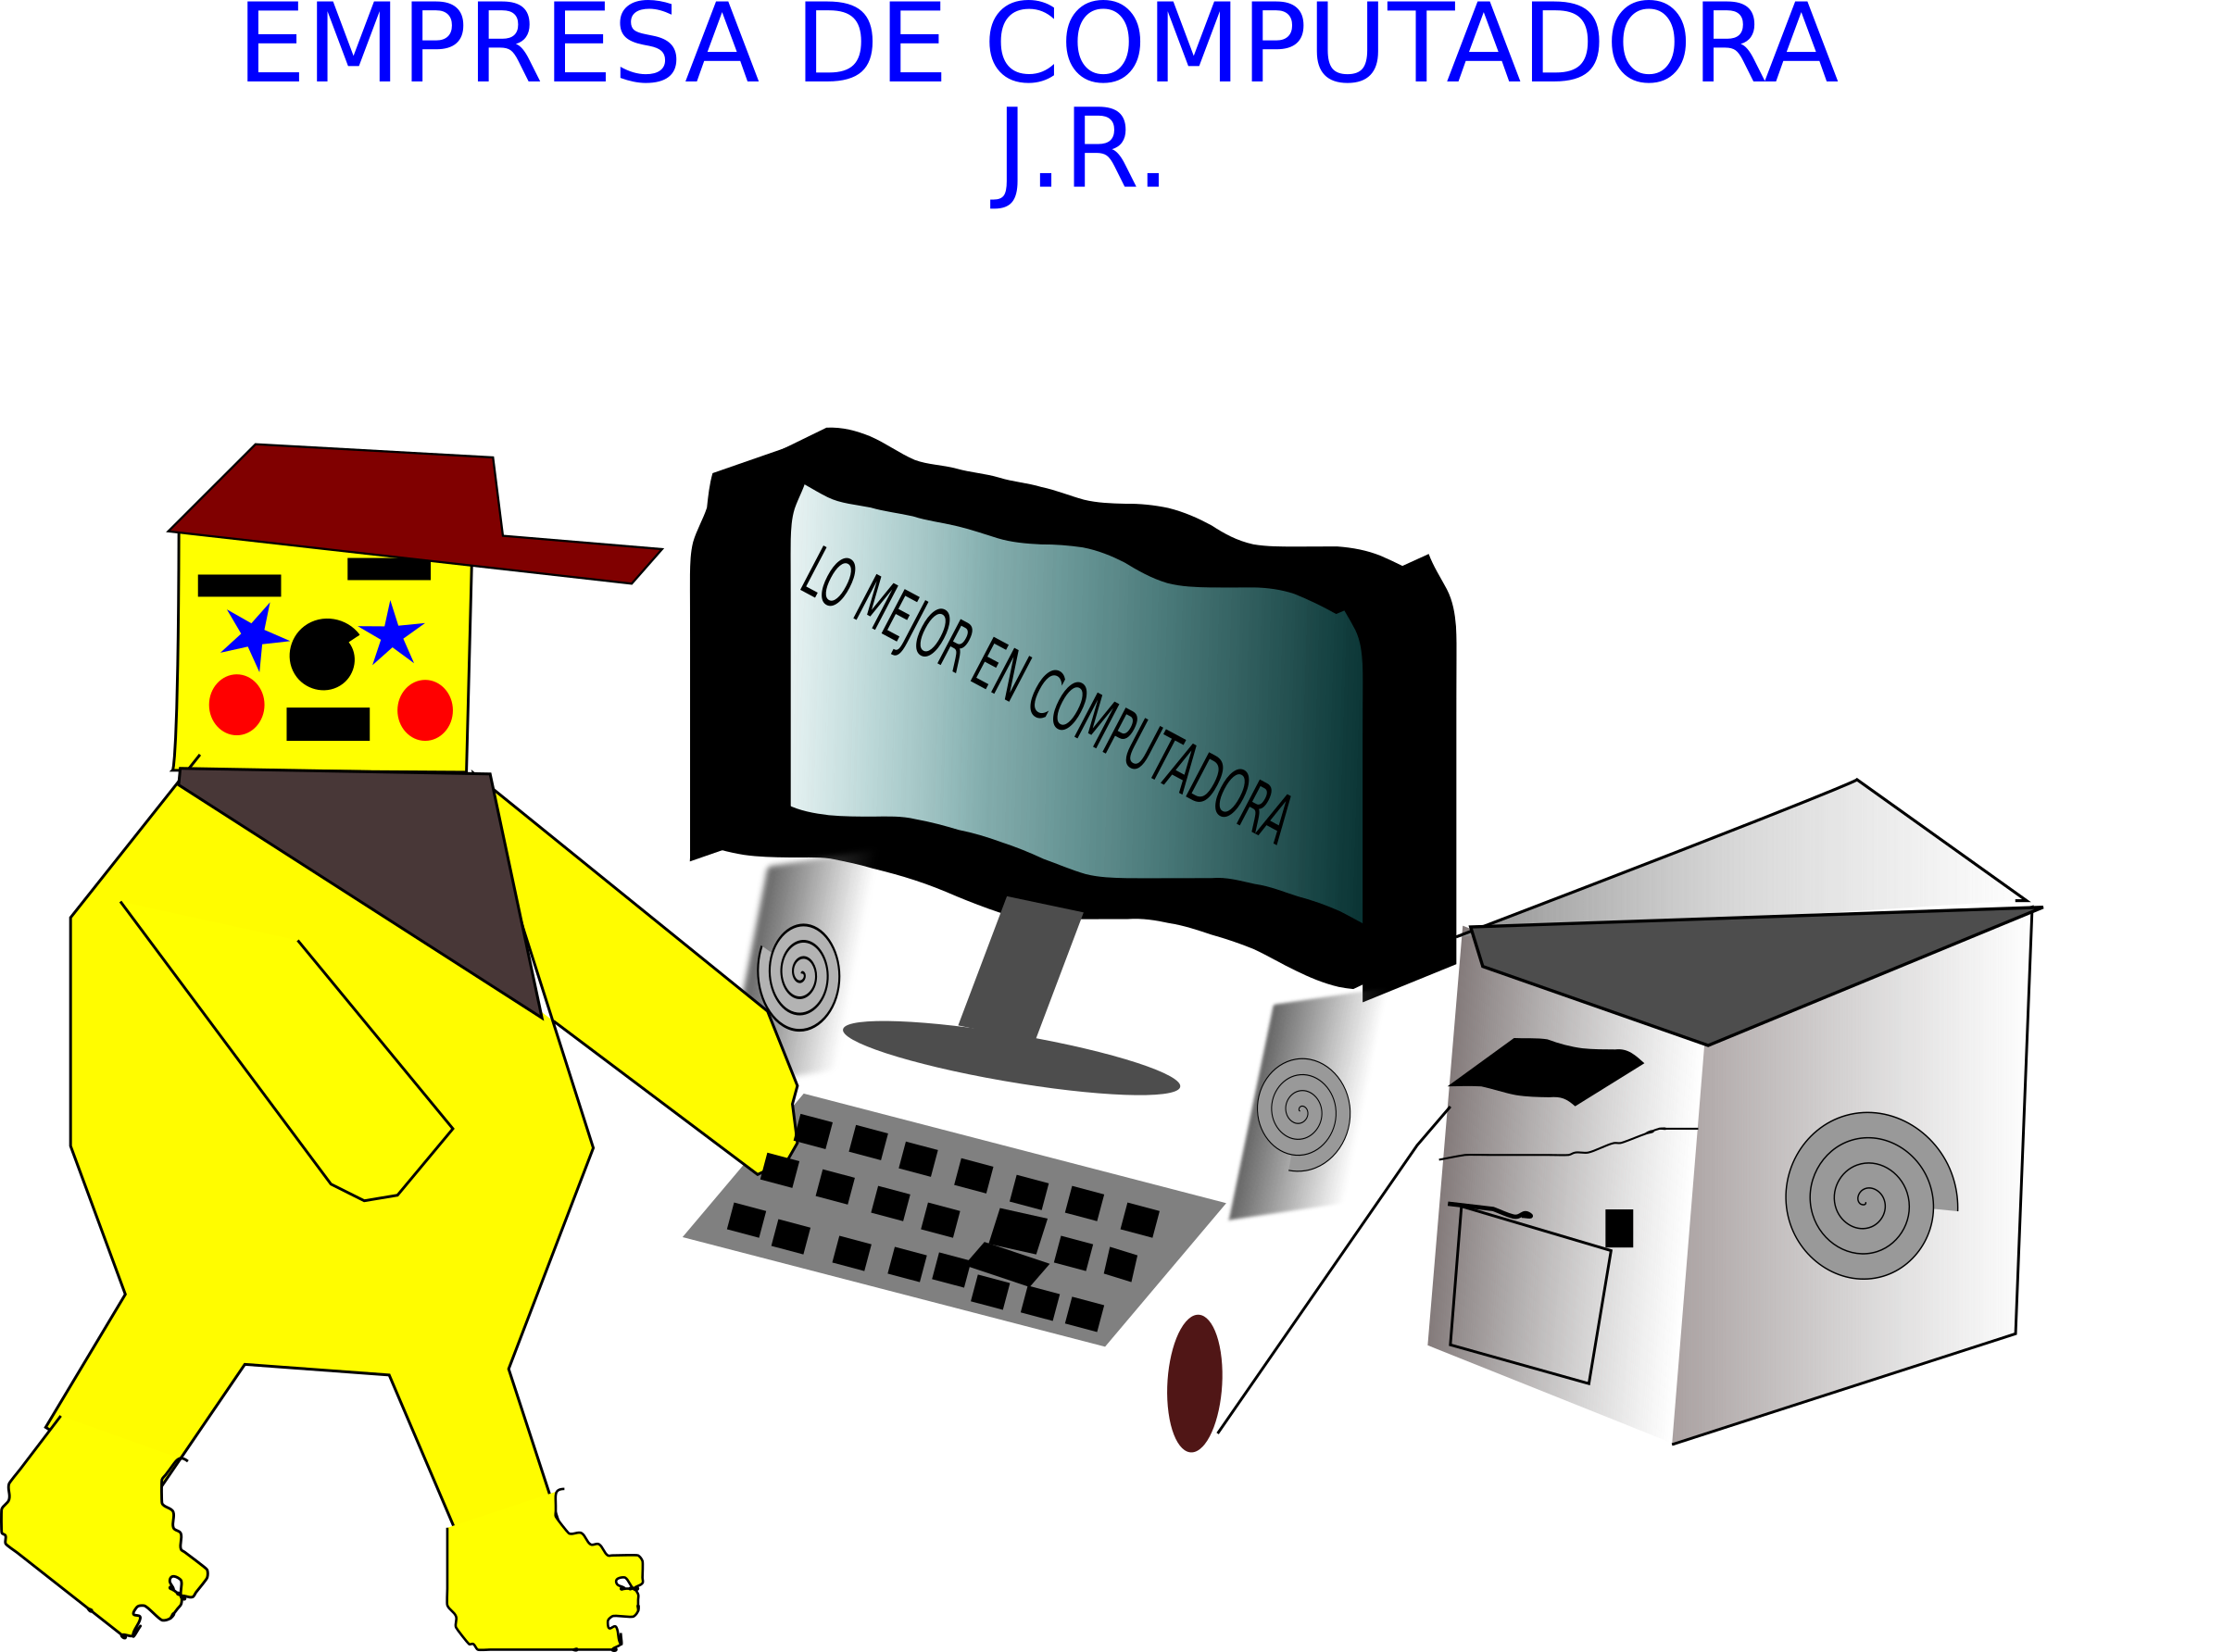 LOGOTIPO DE EMPRESA DE COMPUTADORA by johnn125